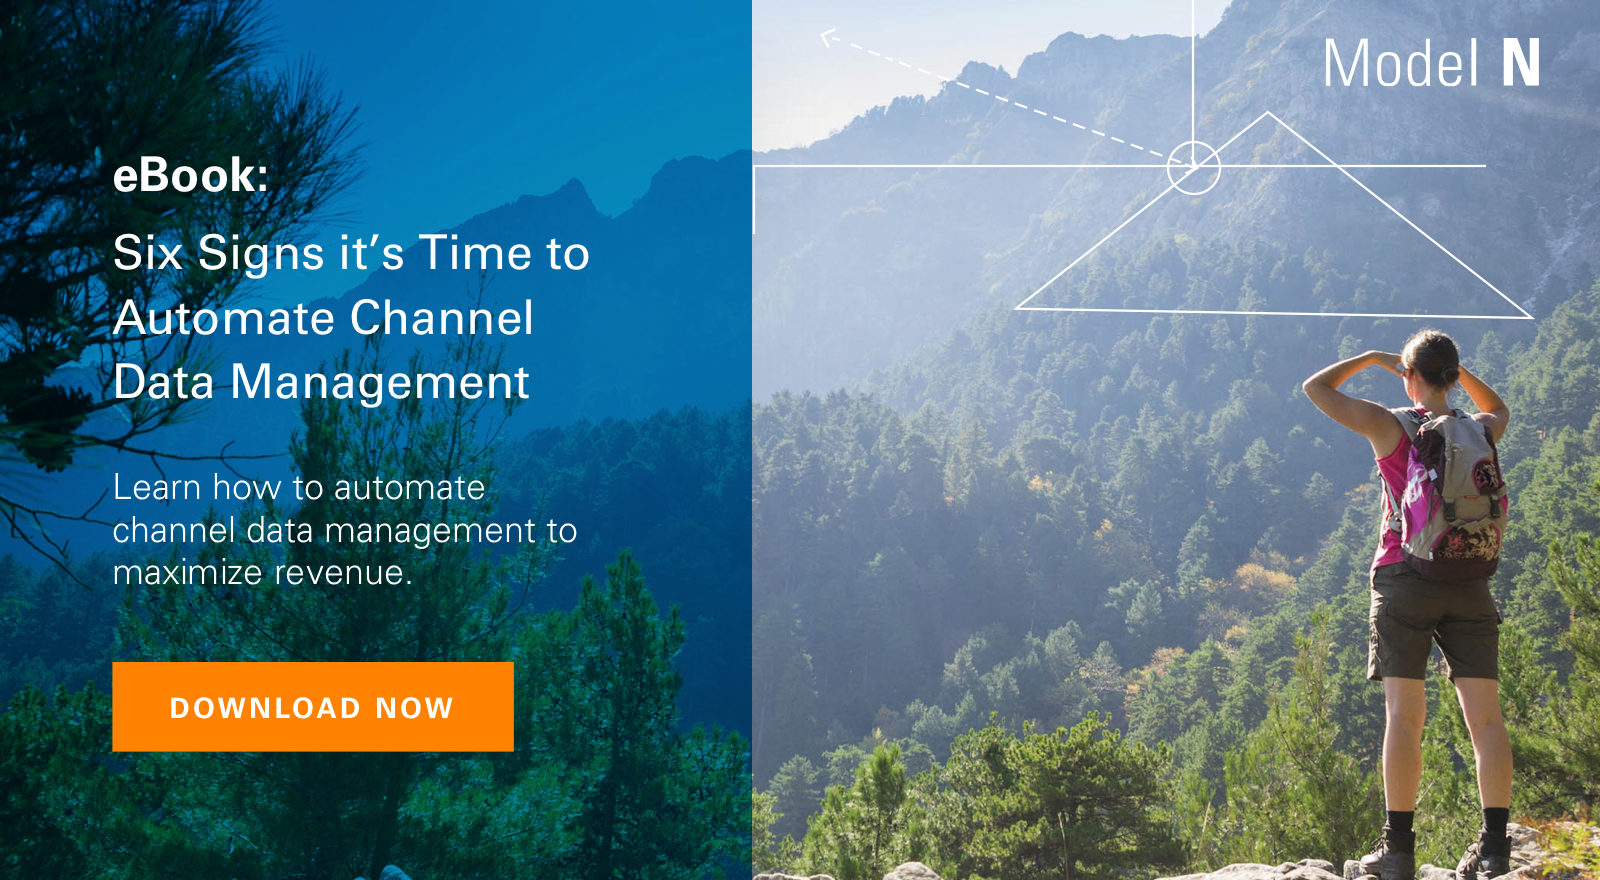 Whitepaper: SIX SIGNS IT'S TIME TO AUTOMATE CHANNEL DATA MANAGEMENT